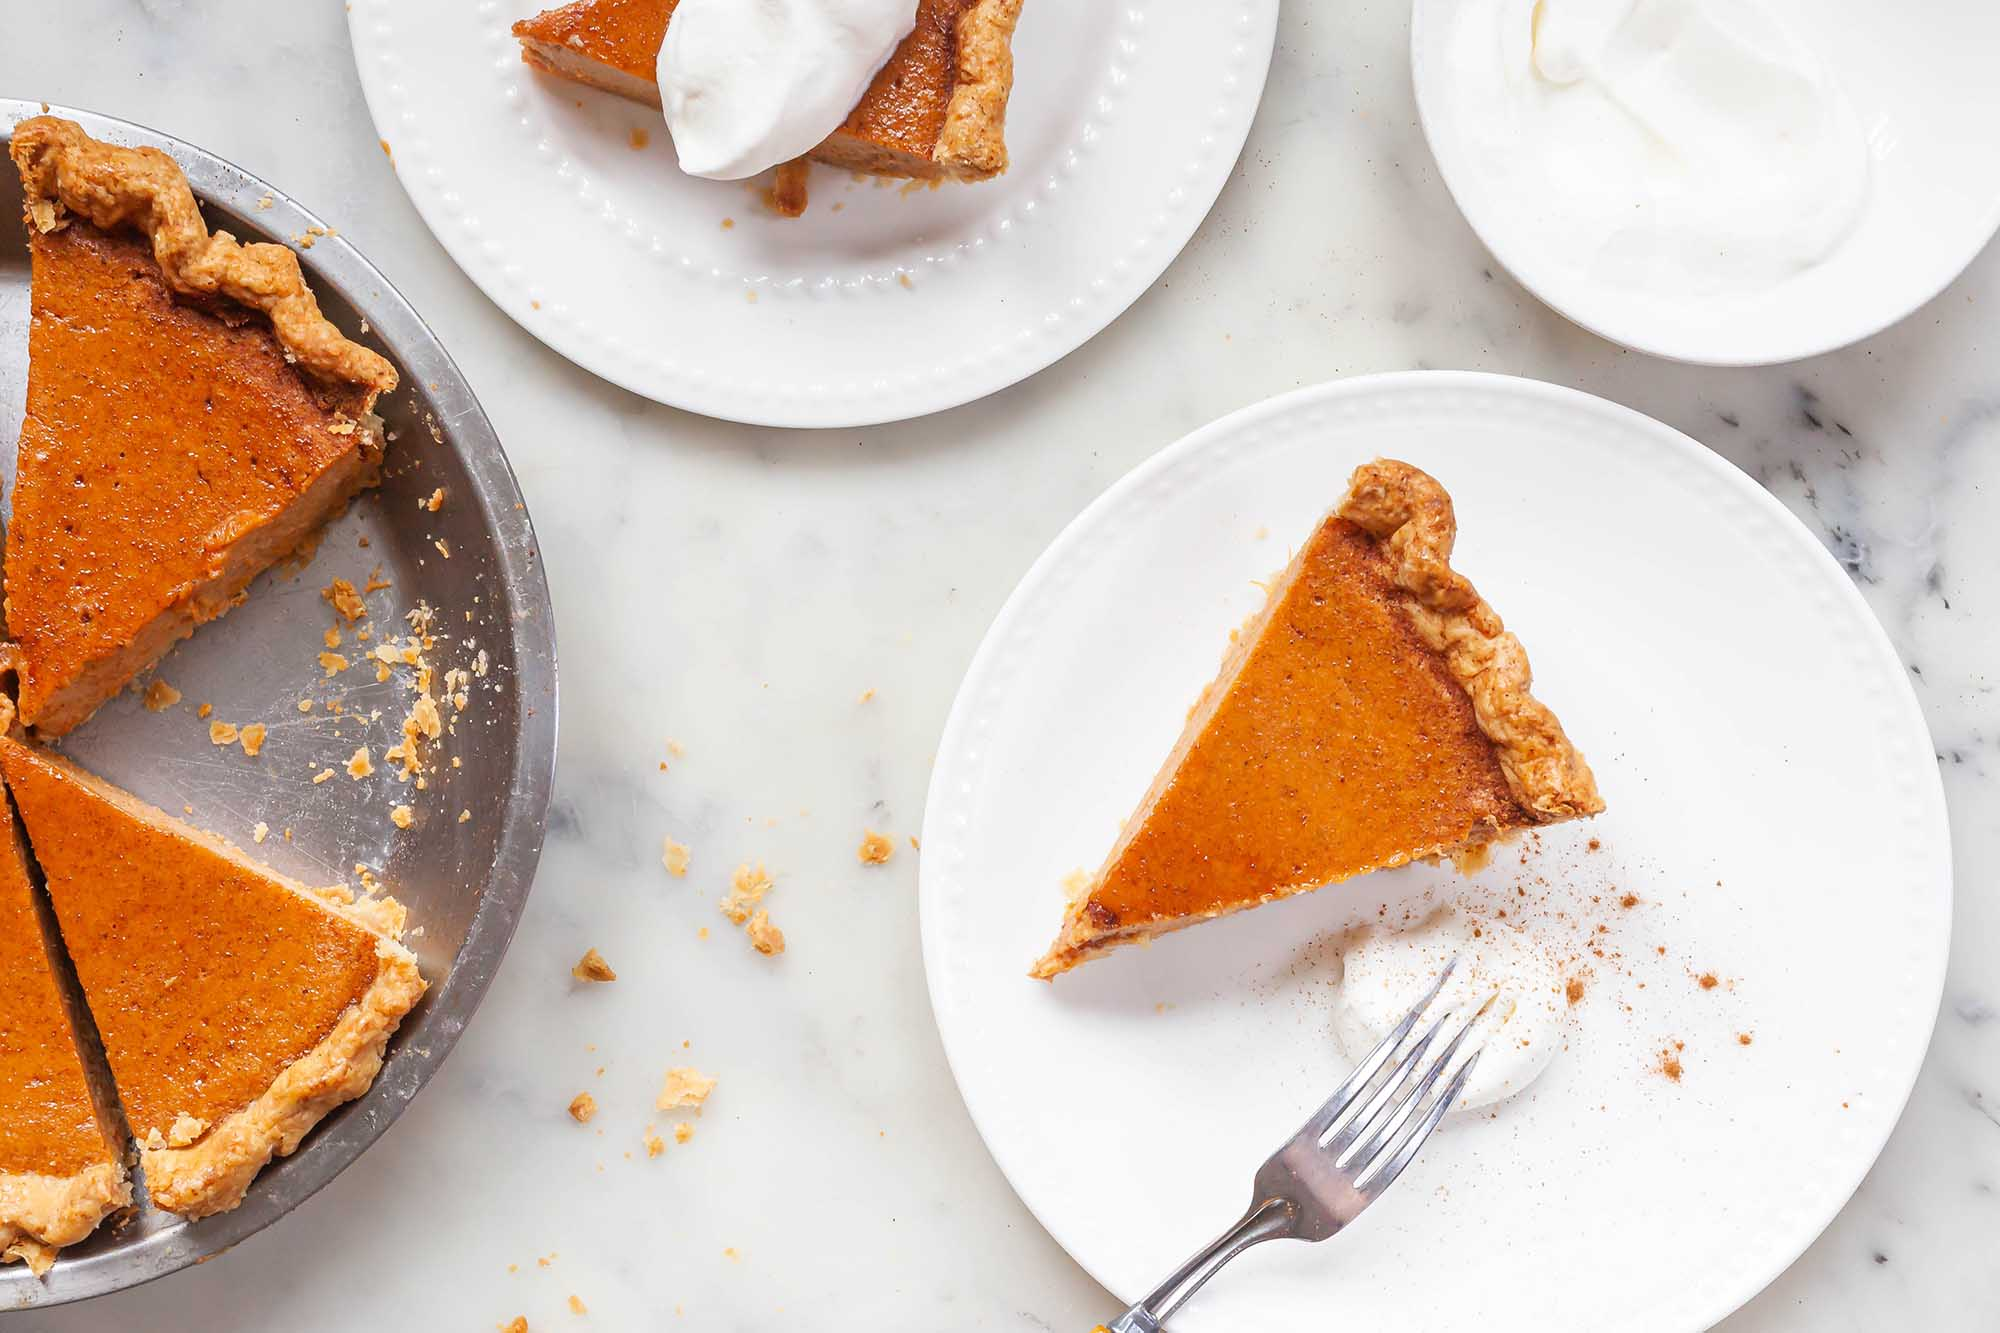 A couple of slices of classic sweet potato pie with the pie off to the side and some whipped cream